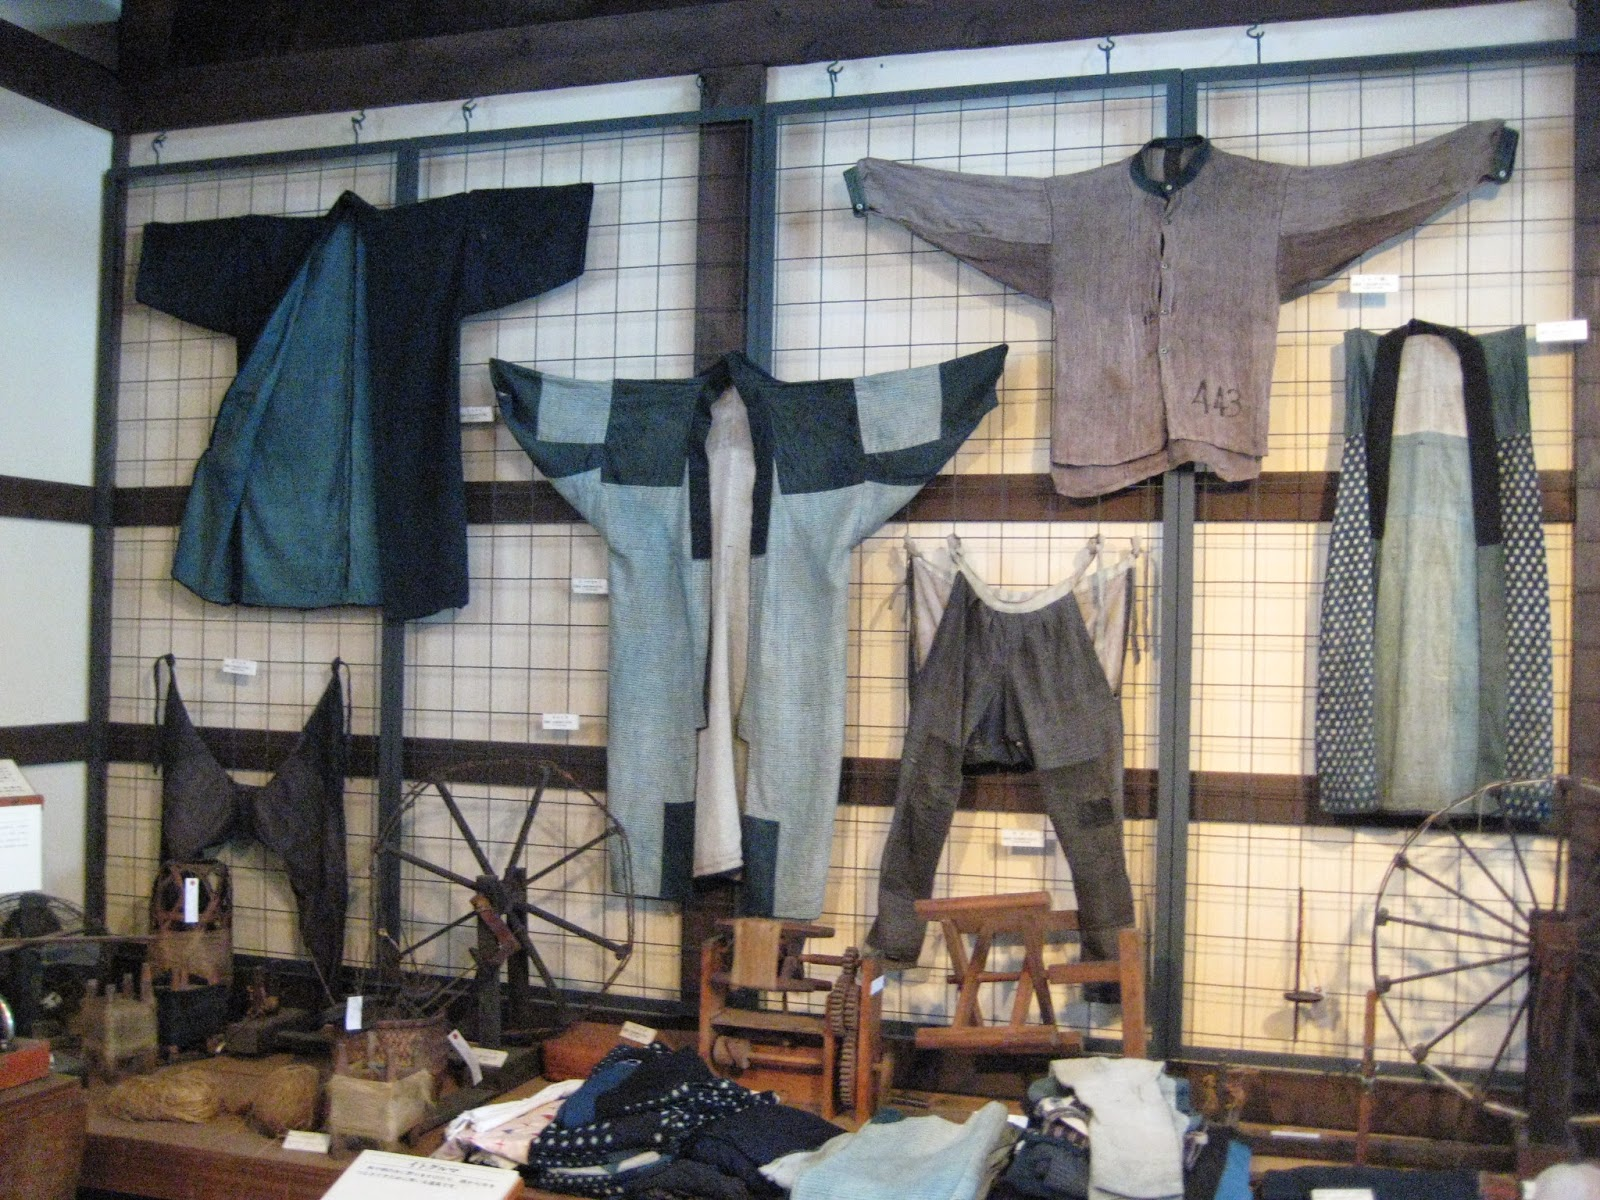 Towada Museum of History and Folklore 十和田湖民俗資料館